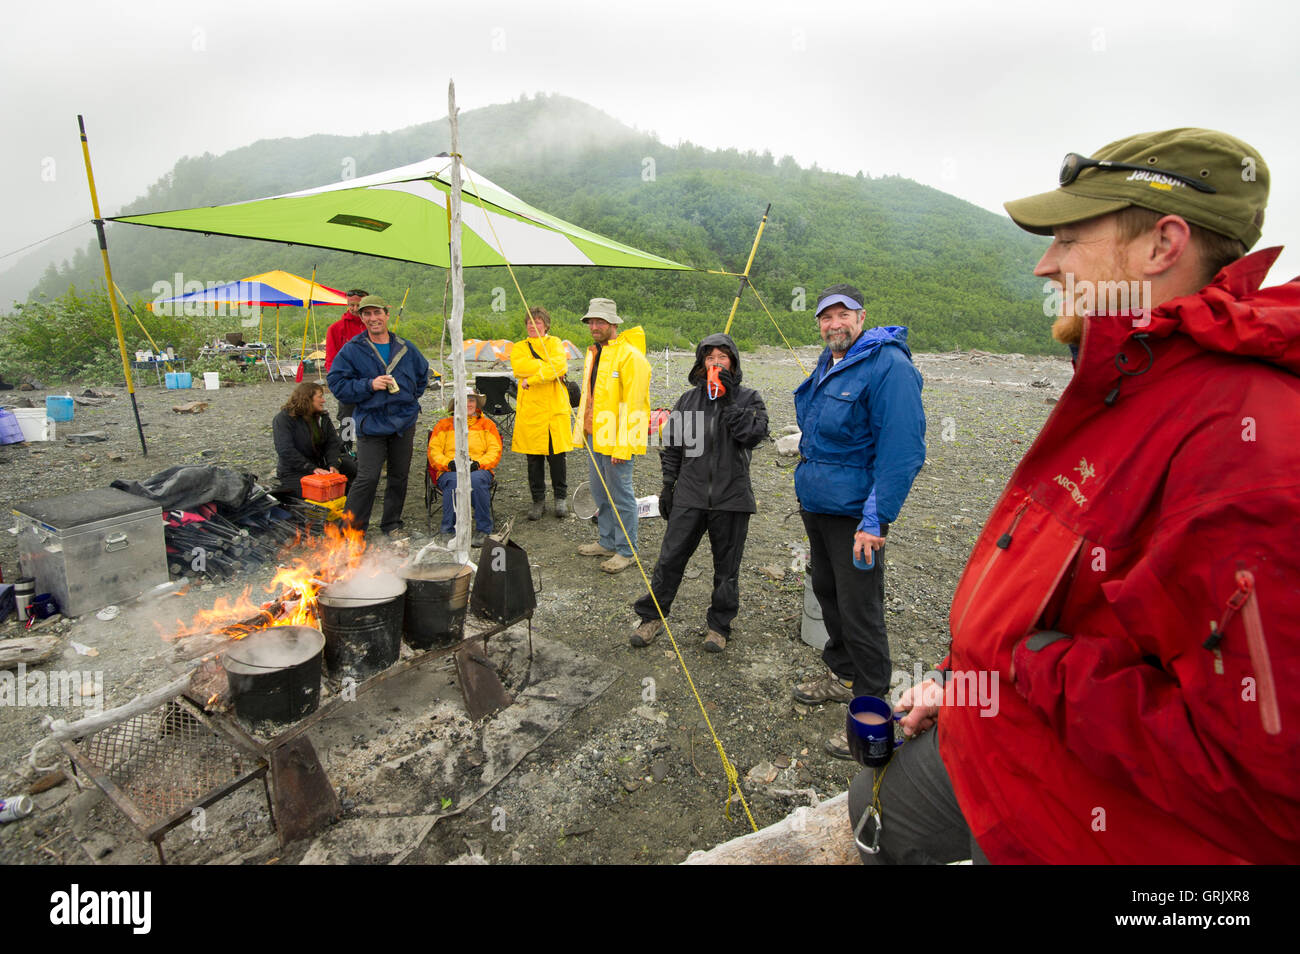 Rafters relaxing around the campfire on a rainy day along the shores of Alsek Lake, Alsek River - Stock Image